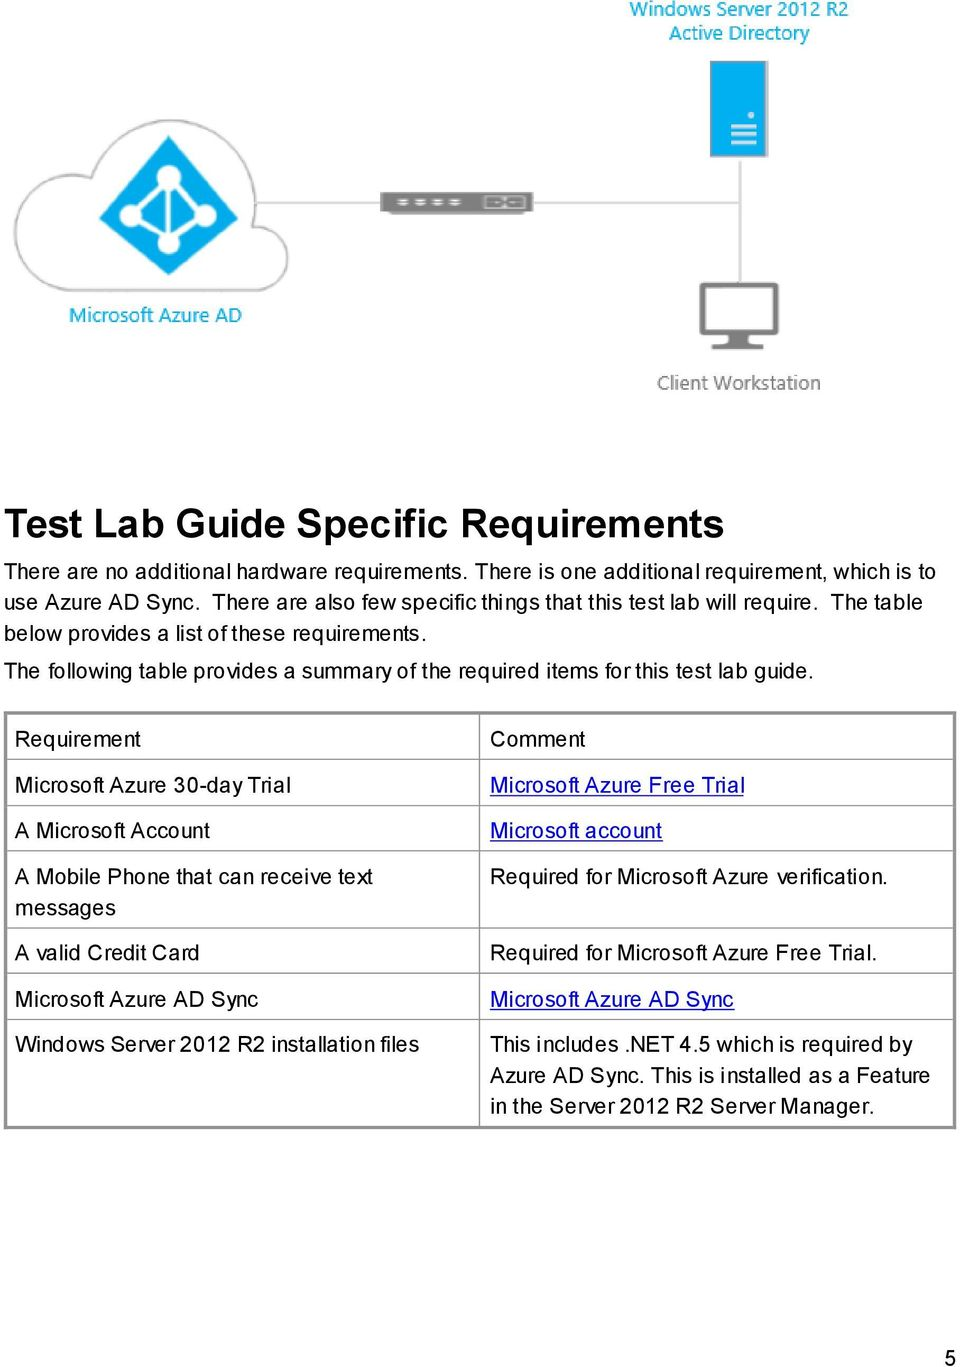 The following table provides a summary of the required items for this test lab guide.